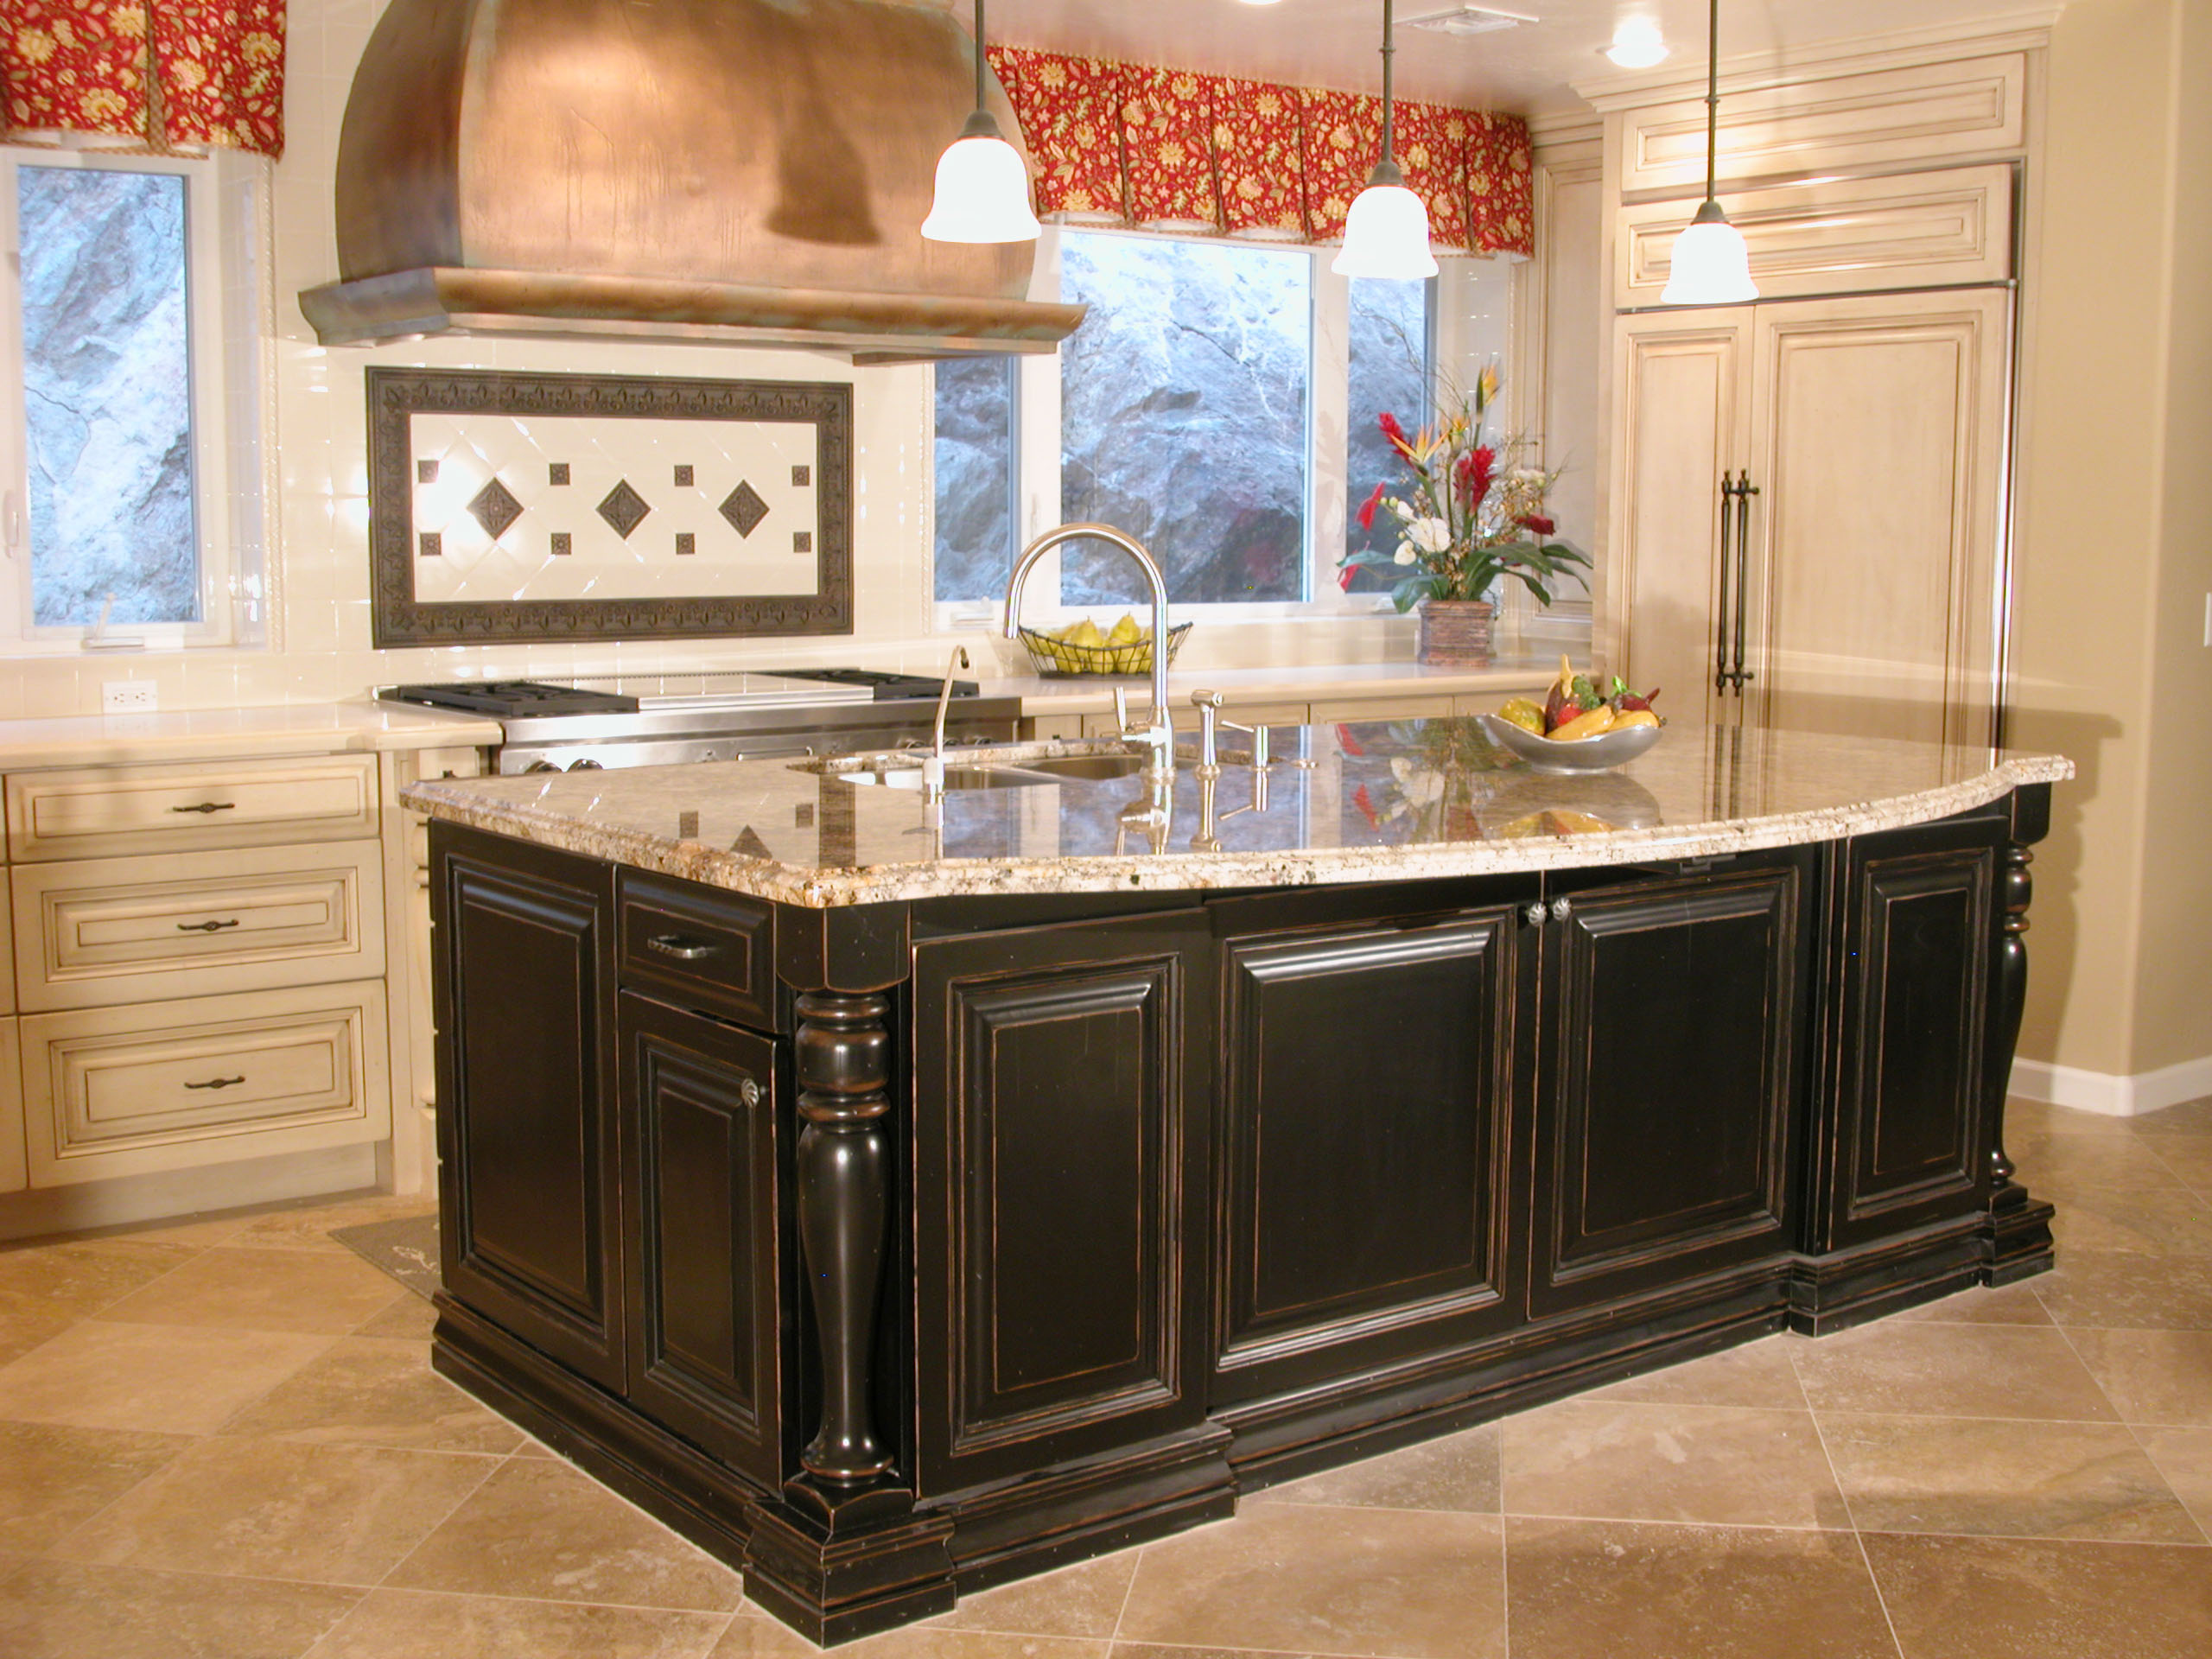 kitchen countertops1